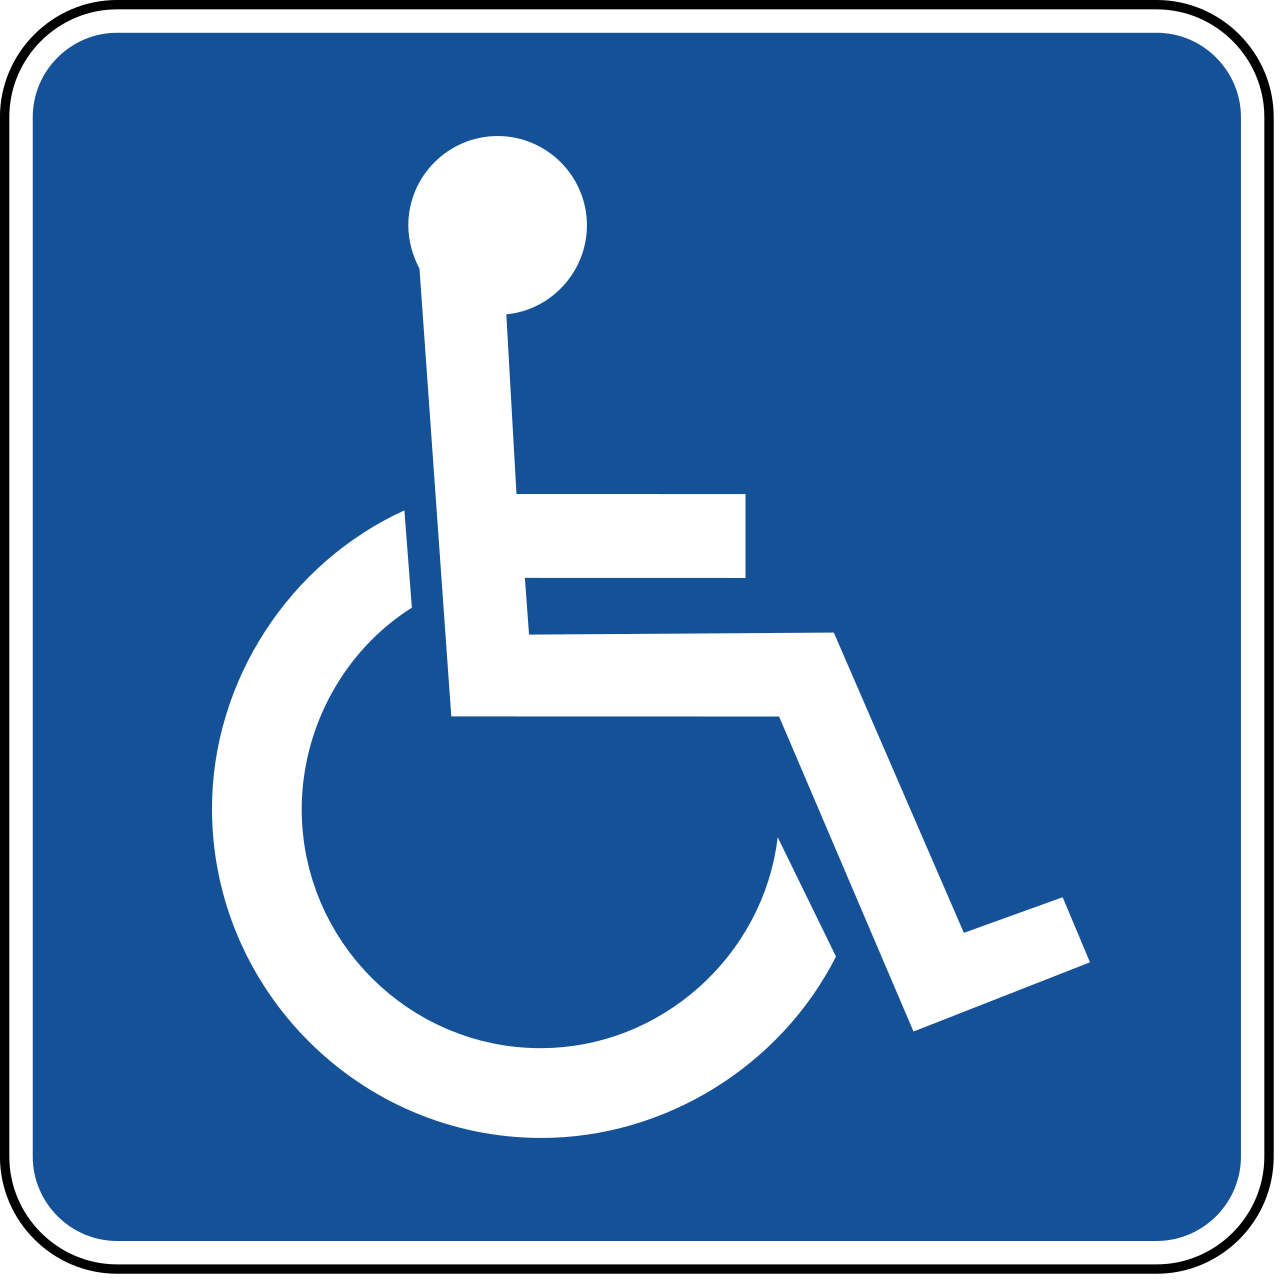 blue sign with white wheelchair icon, the international sign of access